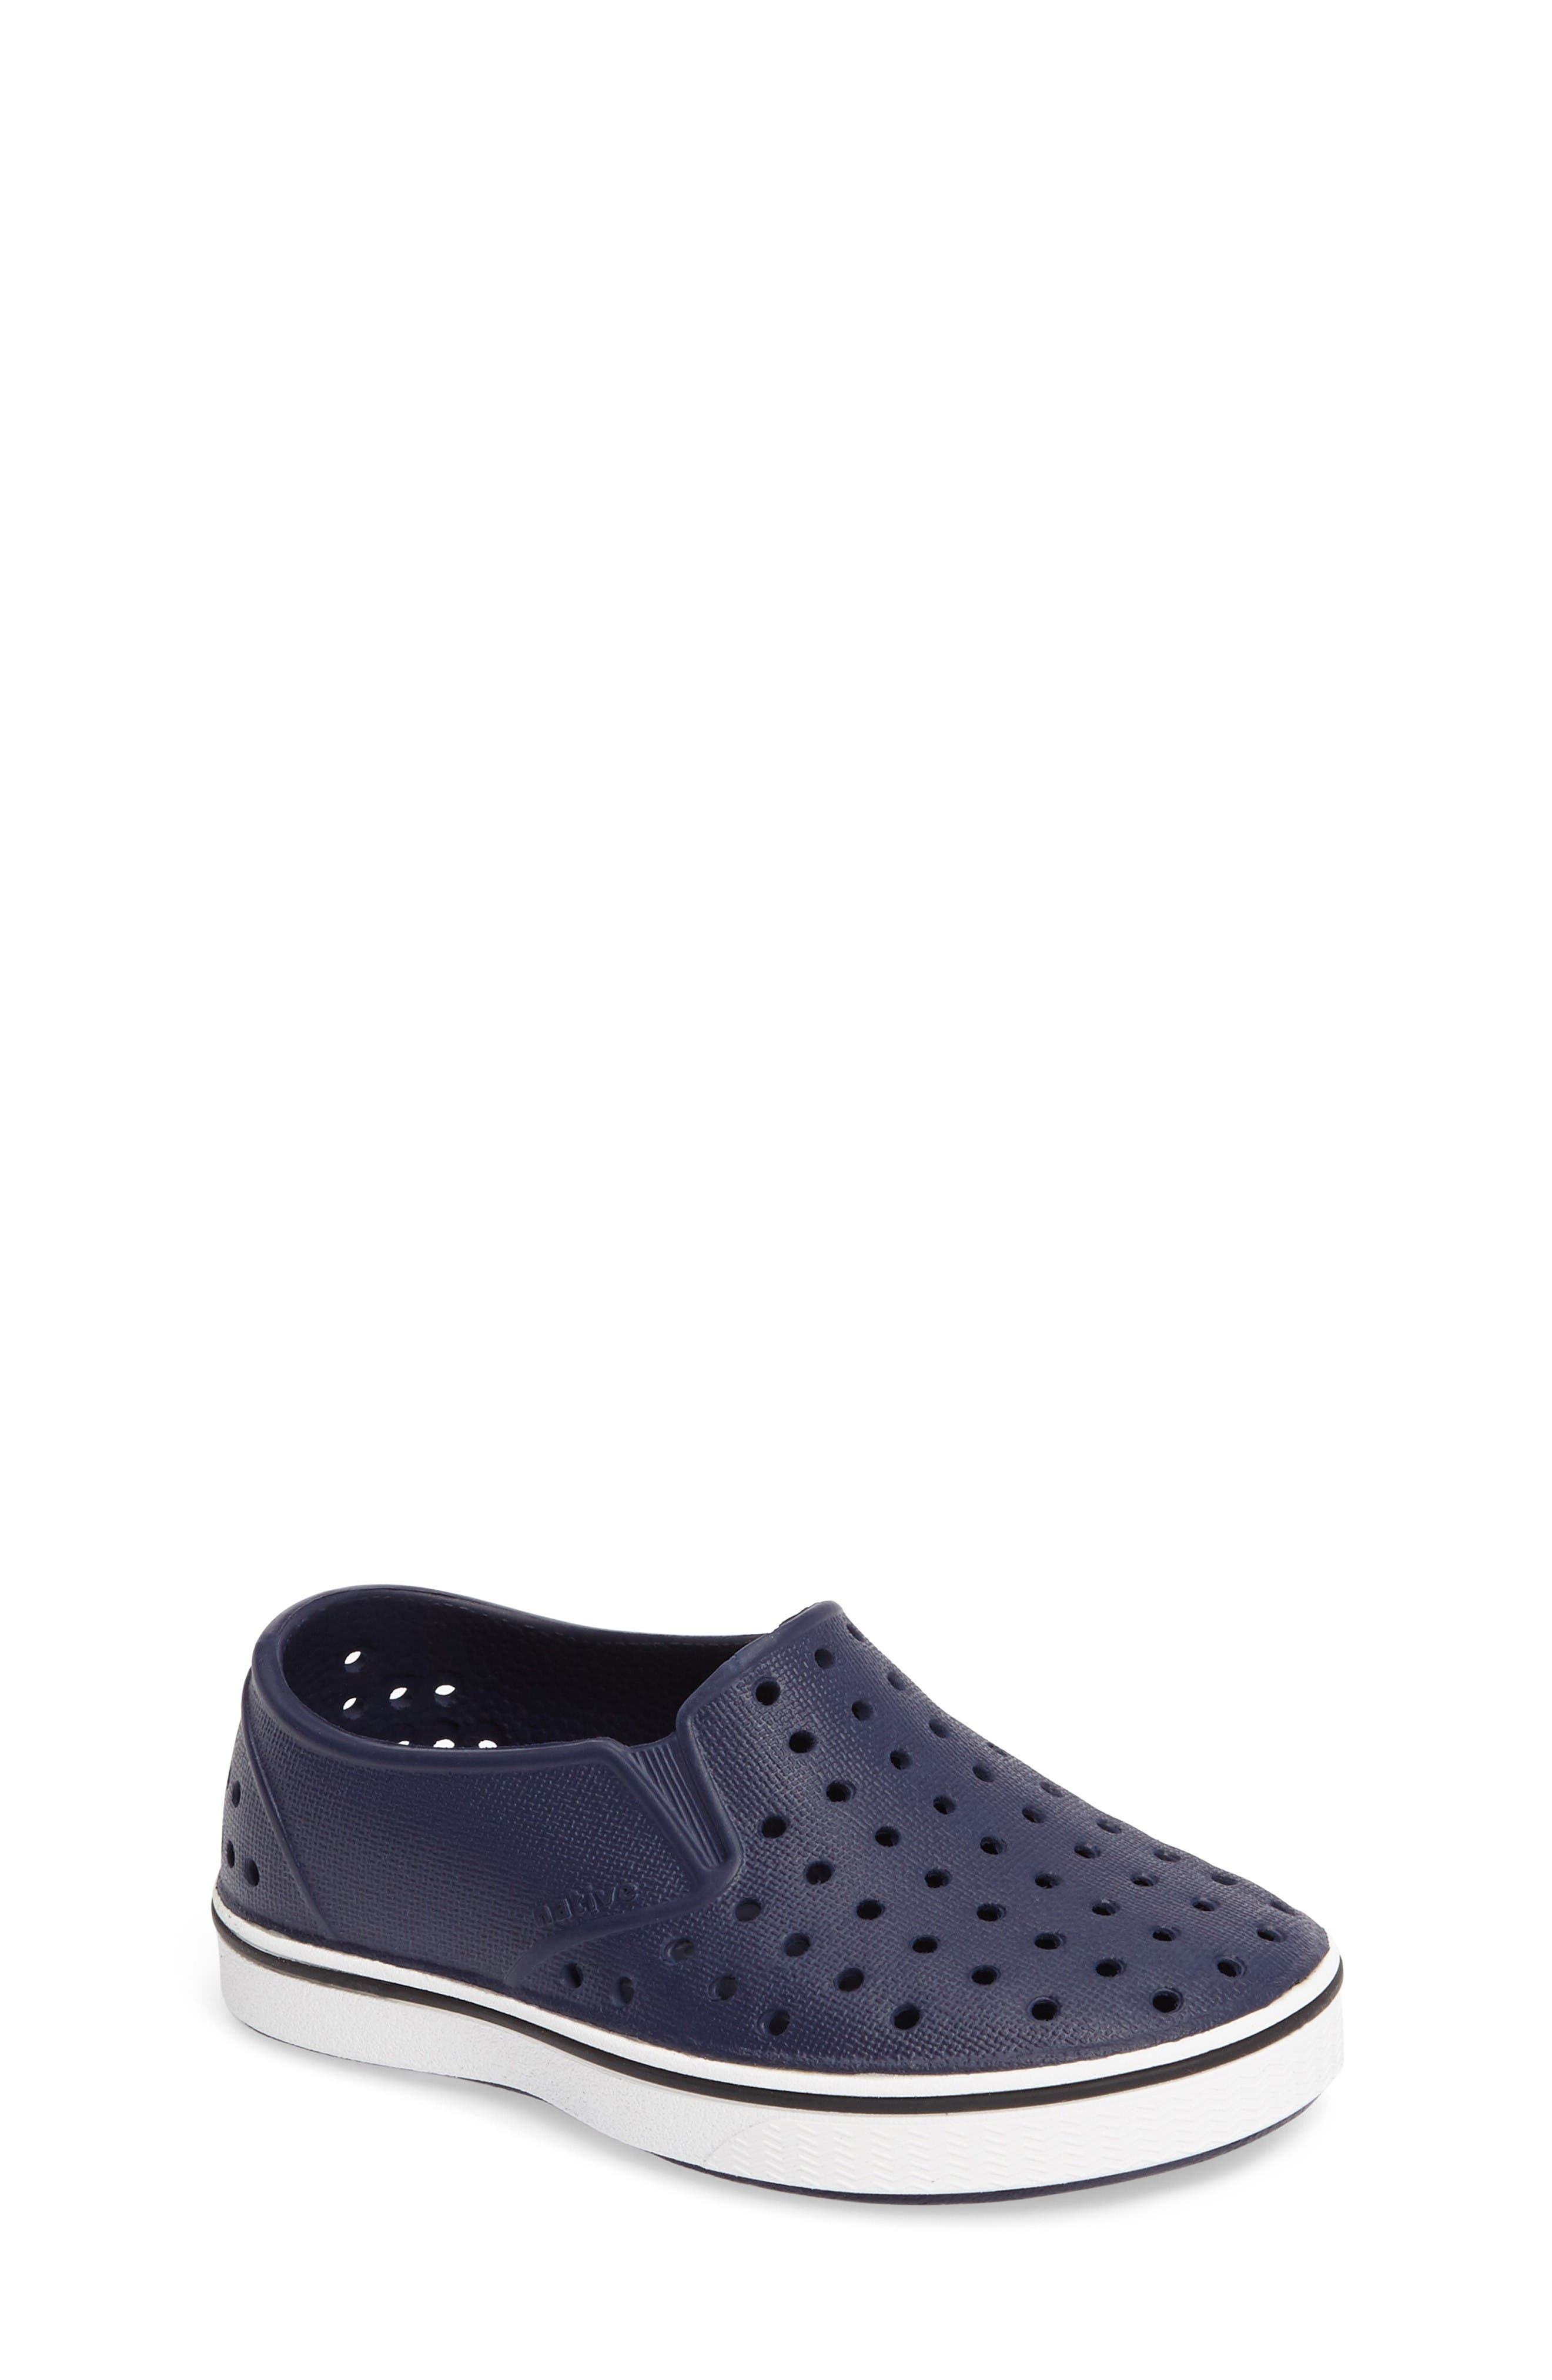 Native Shoes Miles Water Friendly Slip-On Sneaker (Baby, Walker, Toddler & Little Kid)